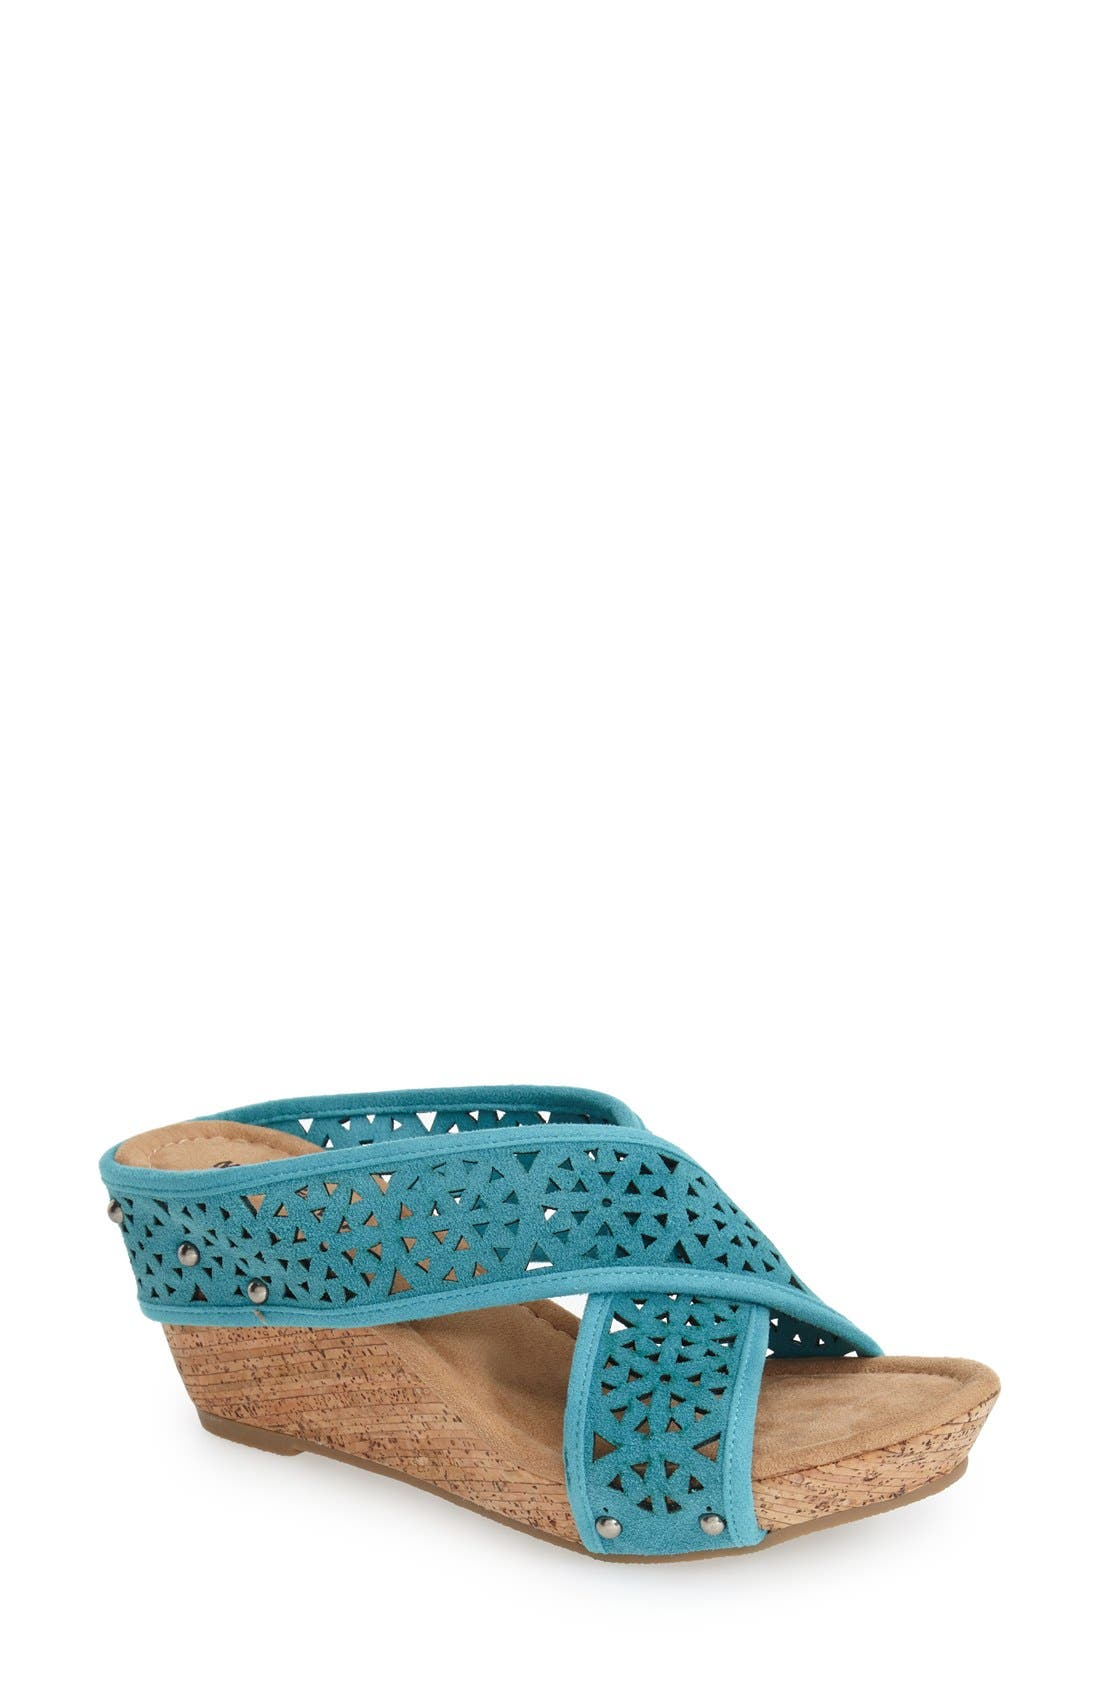 Main Image - Minnetonka 'Lainey' Sandal (Women)